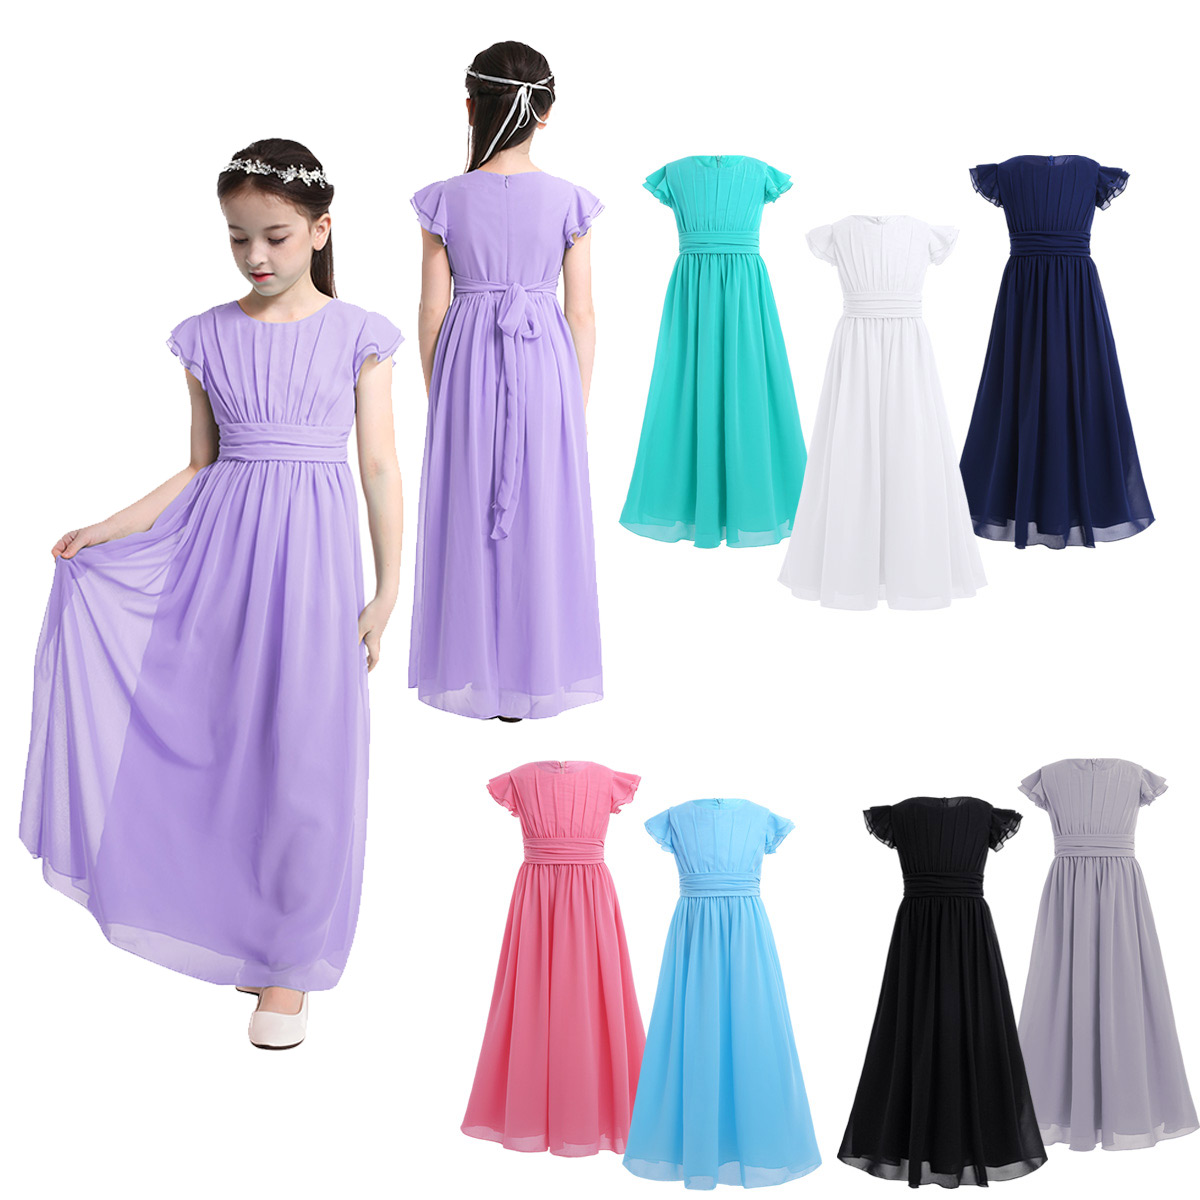 Image 2 - iiniim Girls Flower Tutu Dress Flutter Sleeves Princess Dresses Bridesmaid Summer Birthday Party Dress Childrens Clothinggirls christmas dressgirl christmasbirthday party dress -